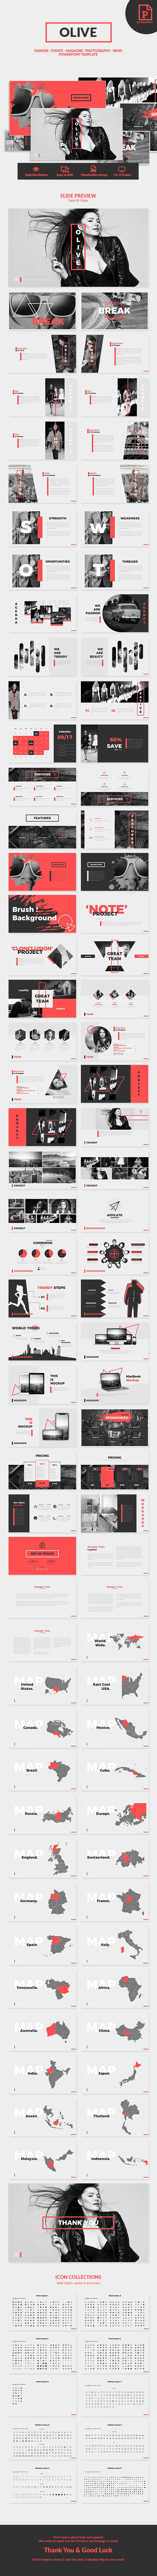 Olive  Creative PowerPoint Template — Powerpoint PPT #abstract #magazine presentation • Available here ➝ https://graphicriver.net/item/olive-creative-powerpoint-template/20738298?ref=pxcr